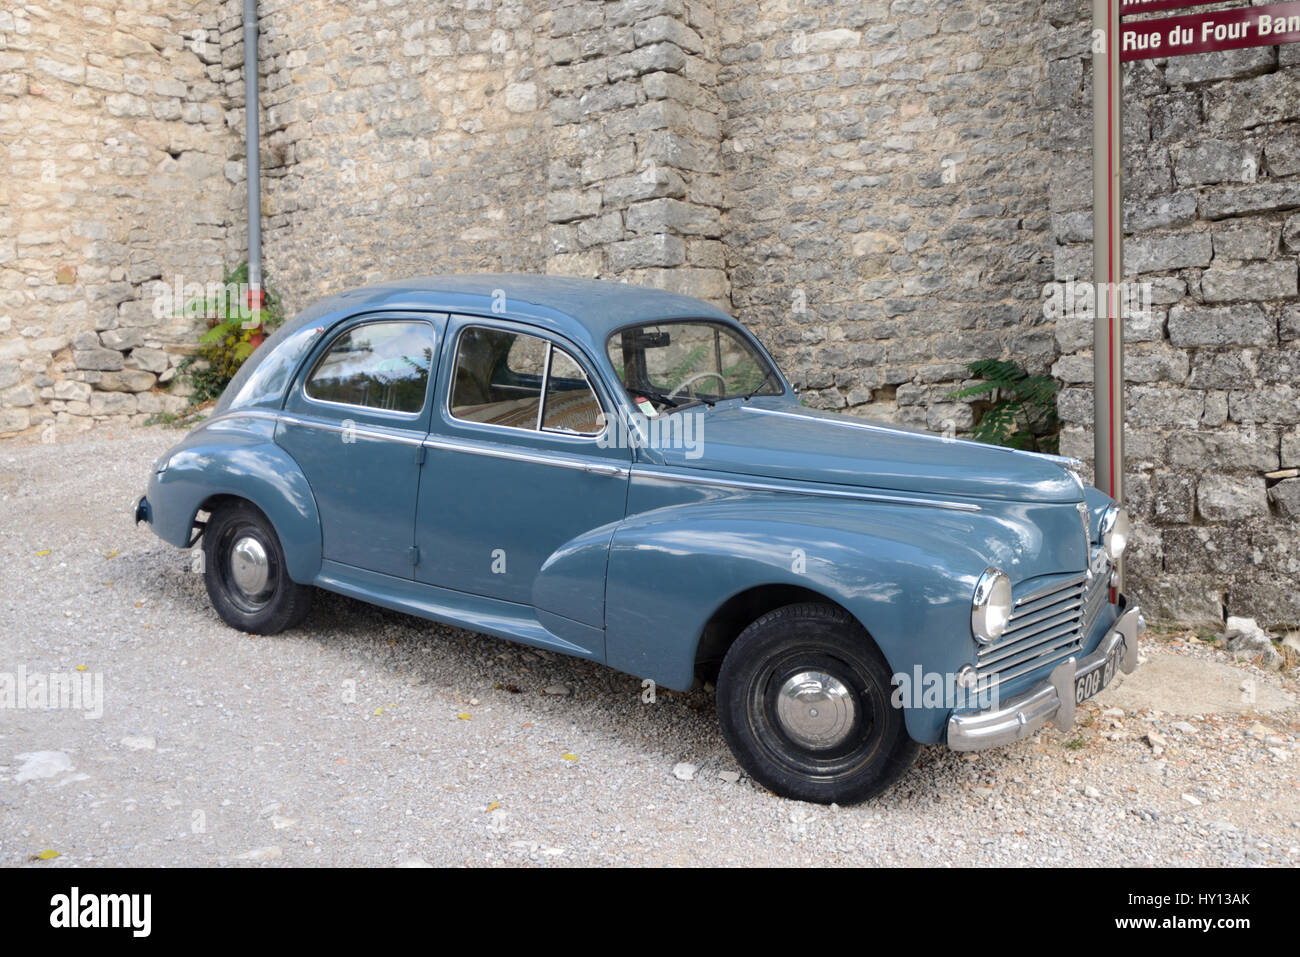 French Veteran or Vintage Peugeot 203 Car or Automobile Produced in France Between 1948 and 1960 - Stock Image